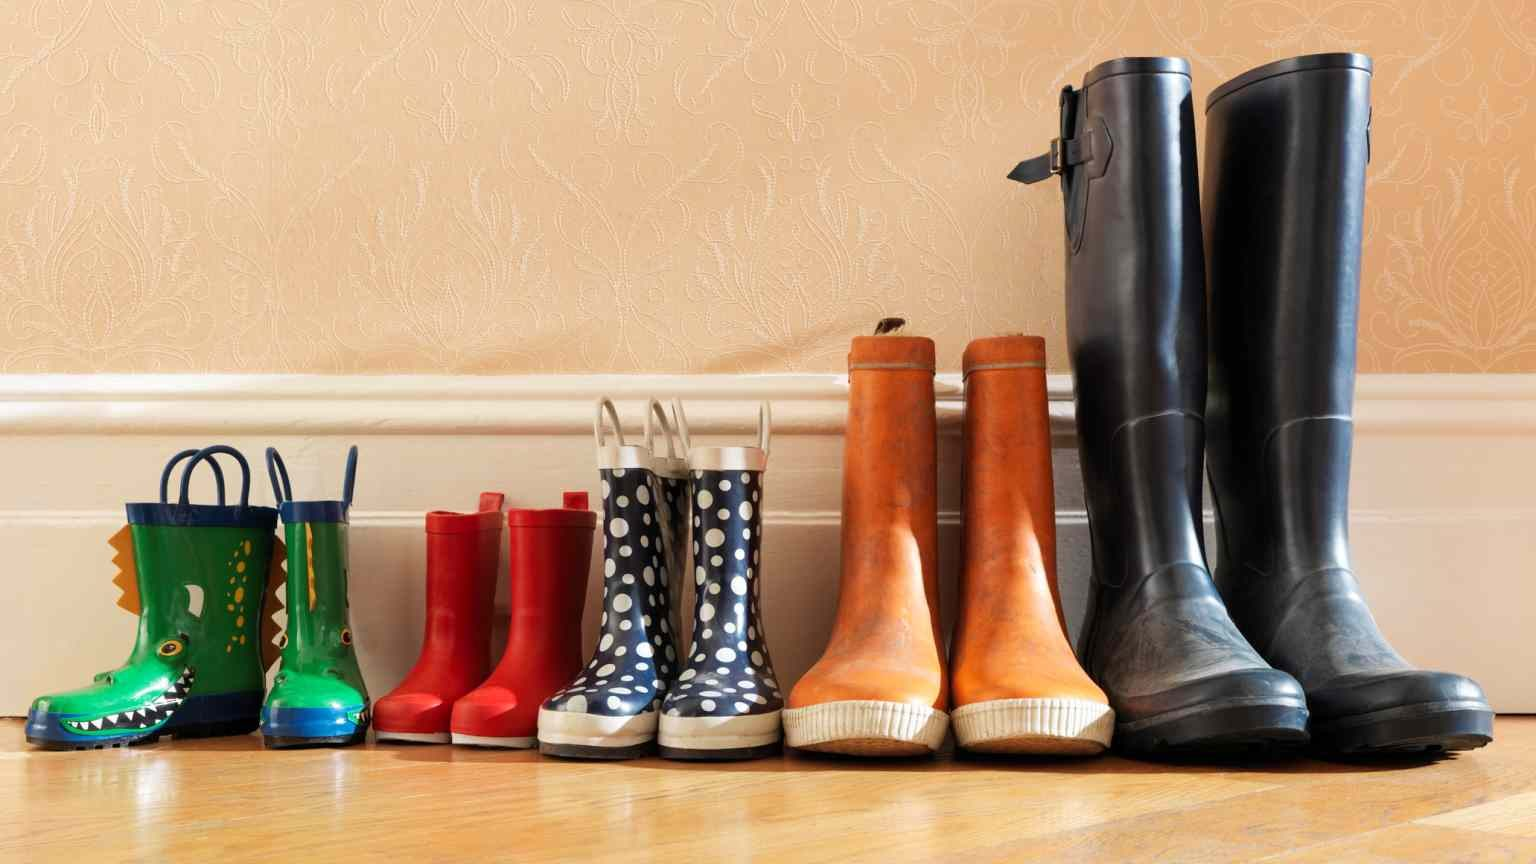 adventure, Anticipation, Choice, Comparison, Contrasts, Domestic Life, holidays, Horizontal, kids crocodile wellies looking to camera, Lifestyles, Medium Group of Objects, No People, odd one out, Order, Photography, Scale, suburban home, Togetherness, Variation, Weekend Activities, Wellington Boot, wellington boots in a row in hallway,adventure